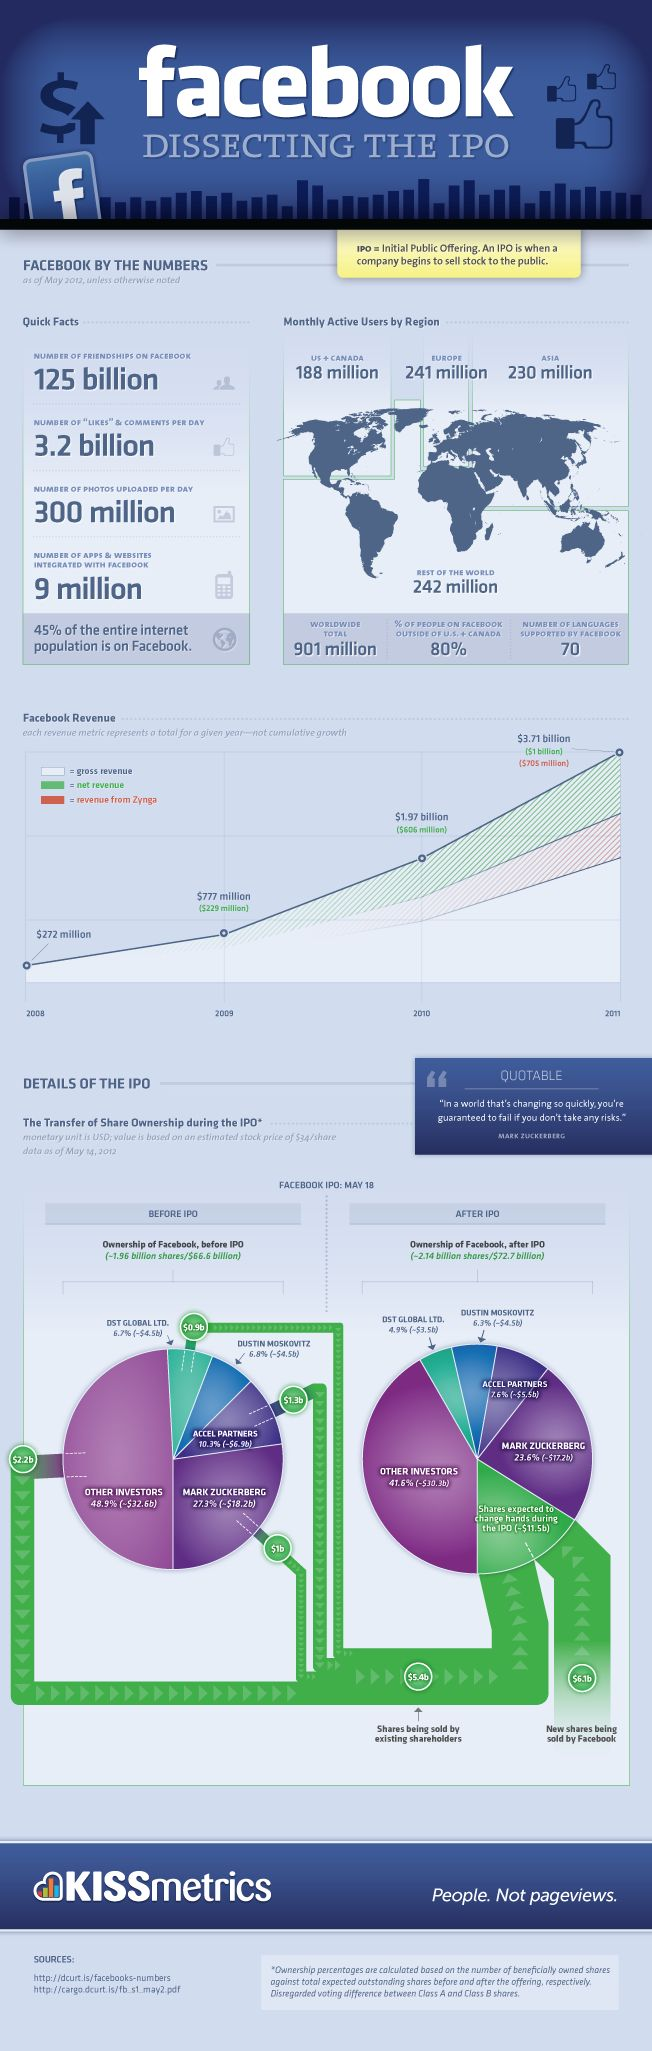 Facebook: Dissecting The IPO (infographic): Ipo Infographic, Technology Marketing, Facebook Ipo,  Website, Latest Technology, Numbers, Technology Stuff, Facebookipo, Socialmedia